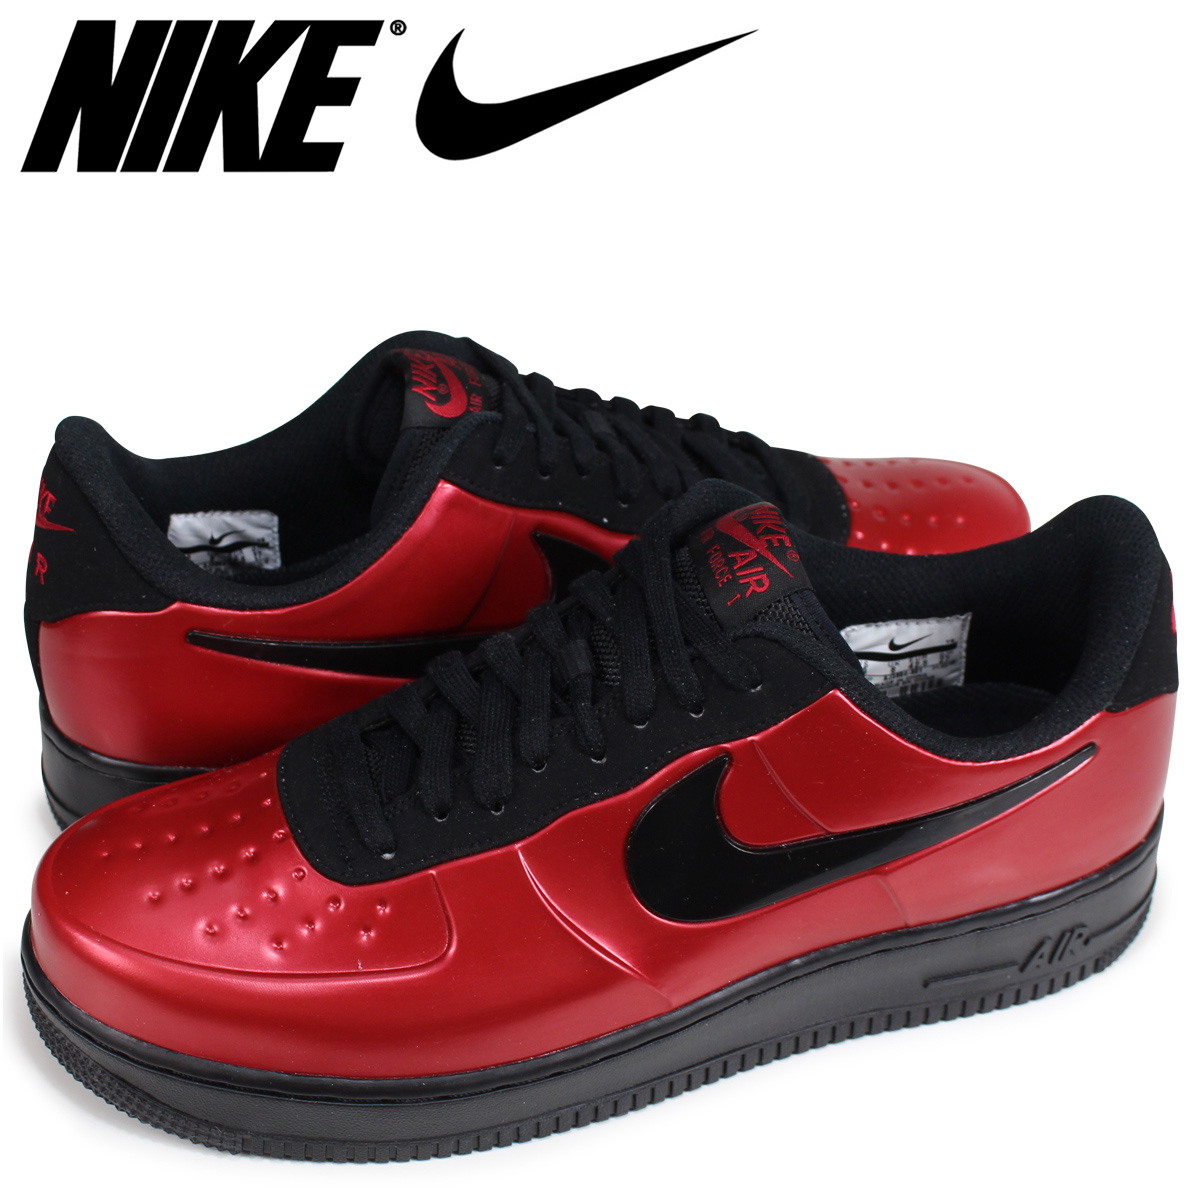 official photos 88499 03cfb NIKE AIR FORCE 1 FOAMPOSITE PRO CUP Nike air force 1 sneakers men red AF1  AJ3664-601